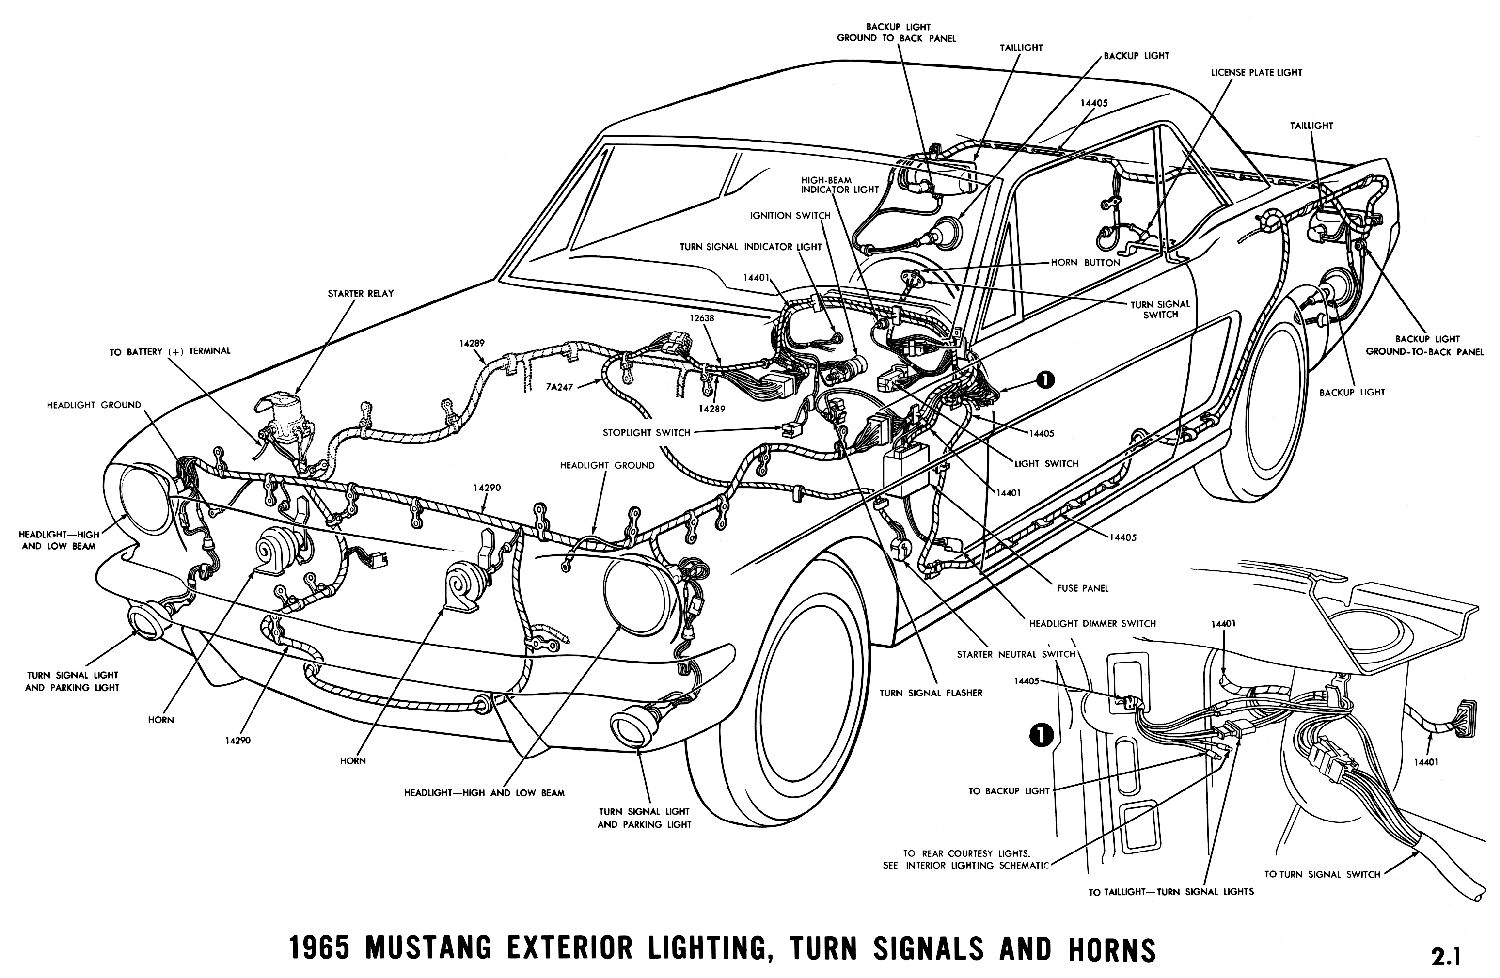 1965d 1965 mustang wiring diagrams average joe restoration mustang parts diagram at bayanpartner.co